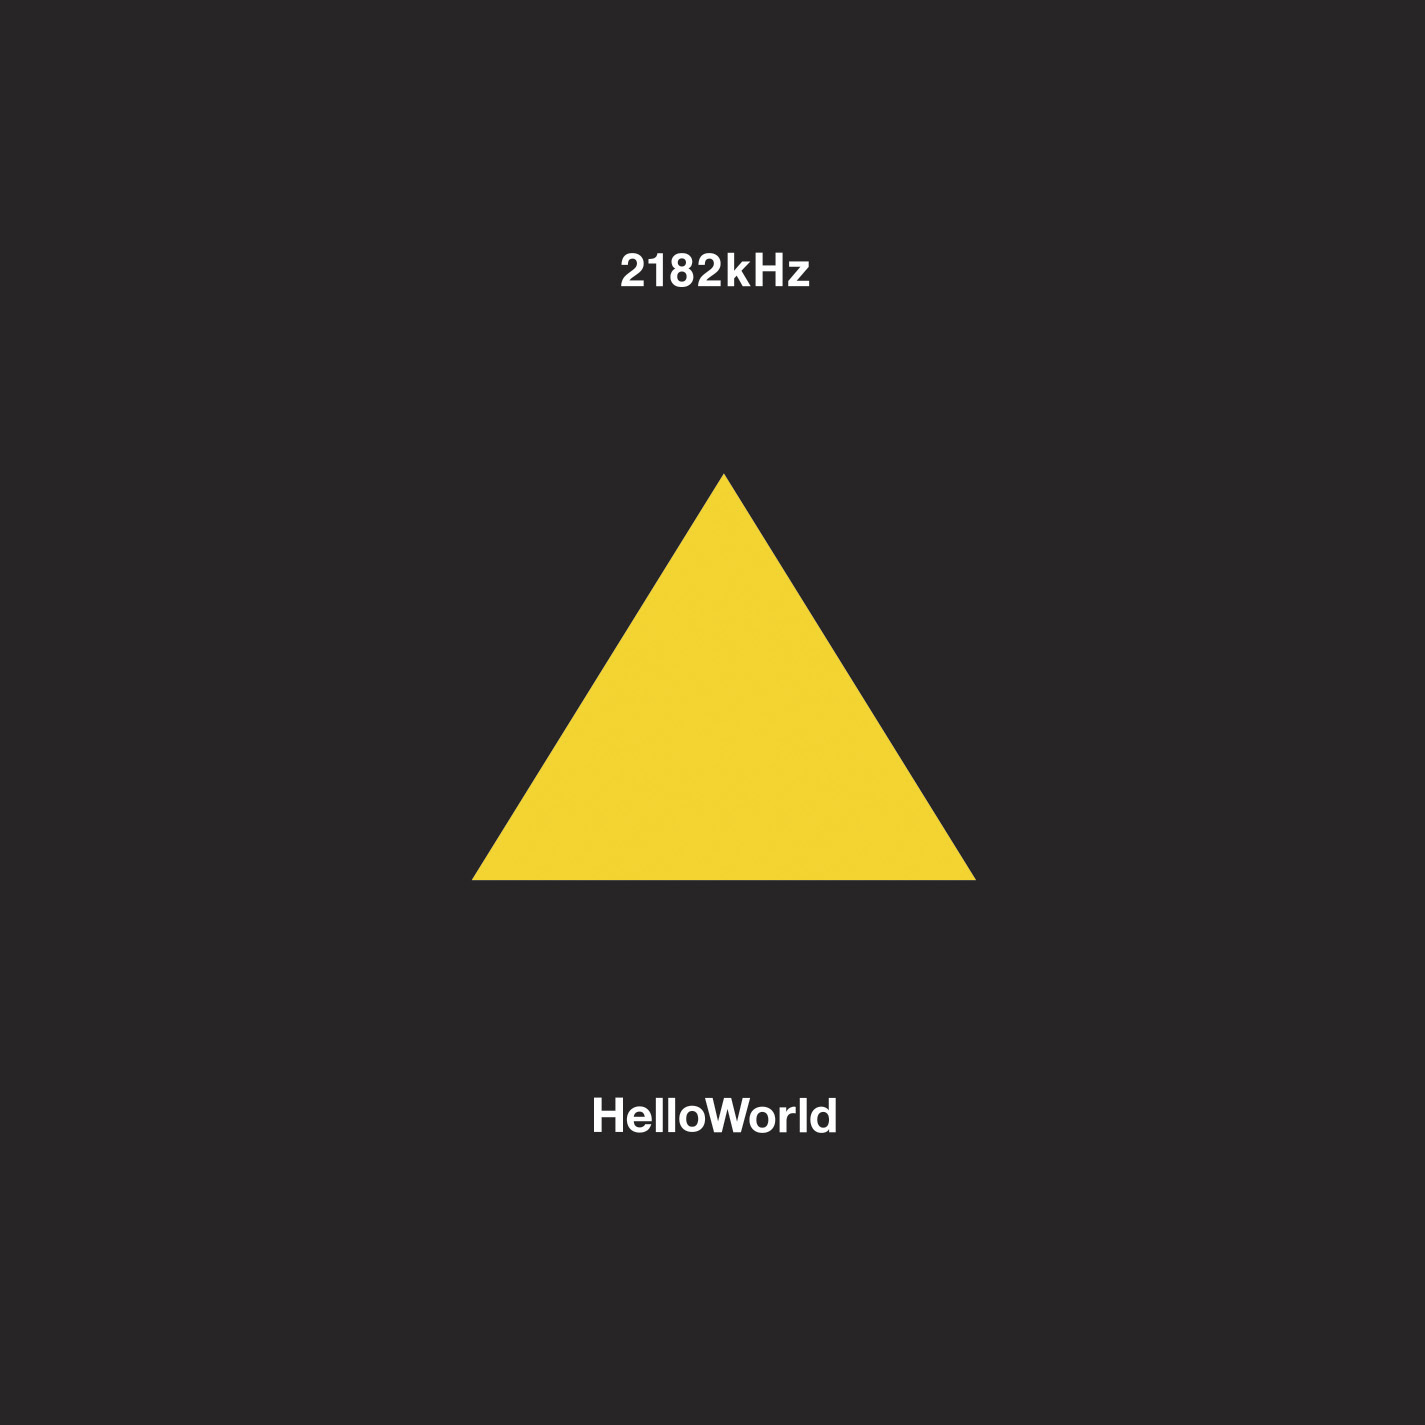 Hello World – 2182kHz